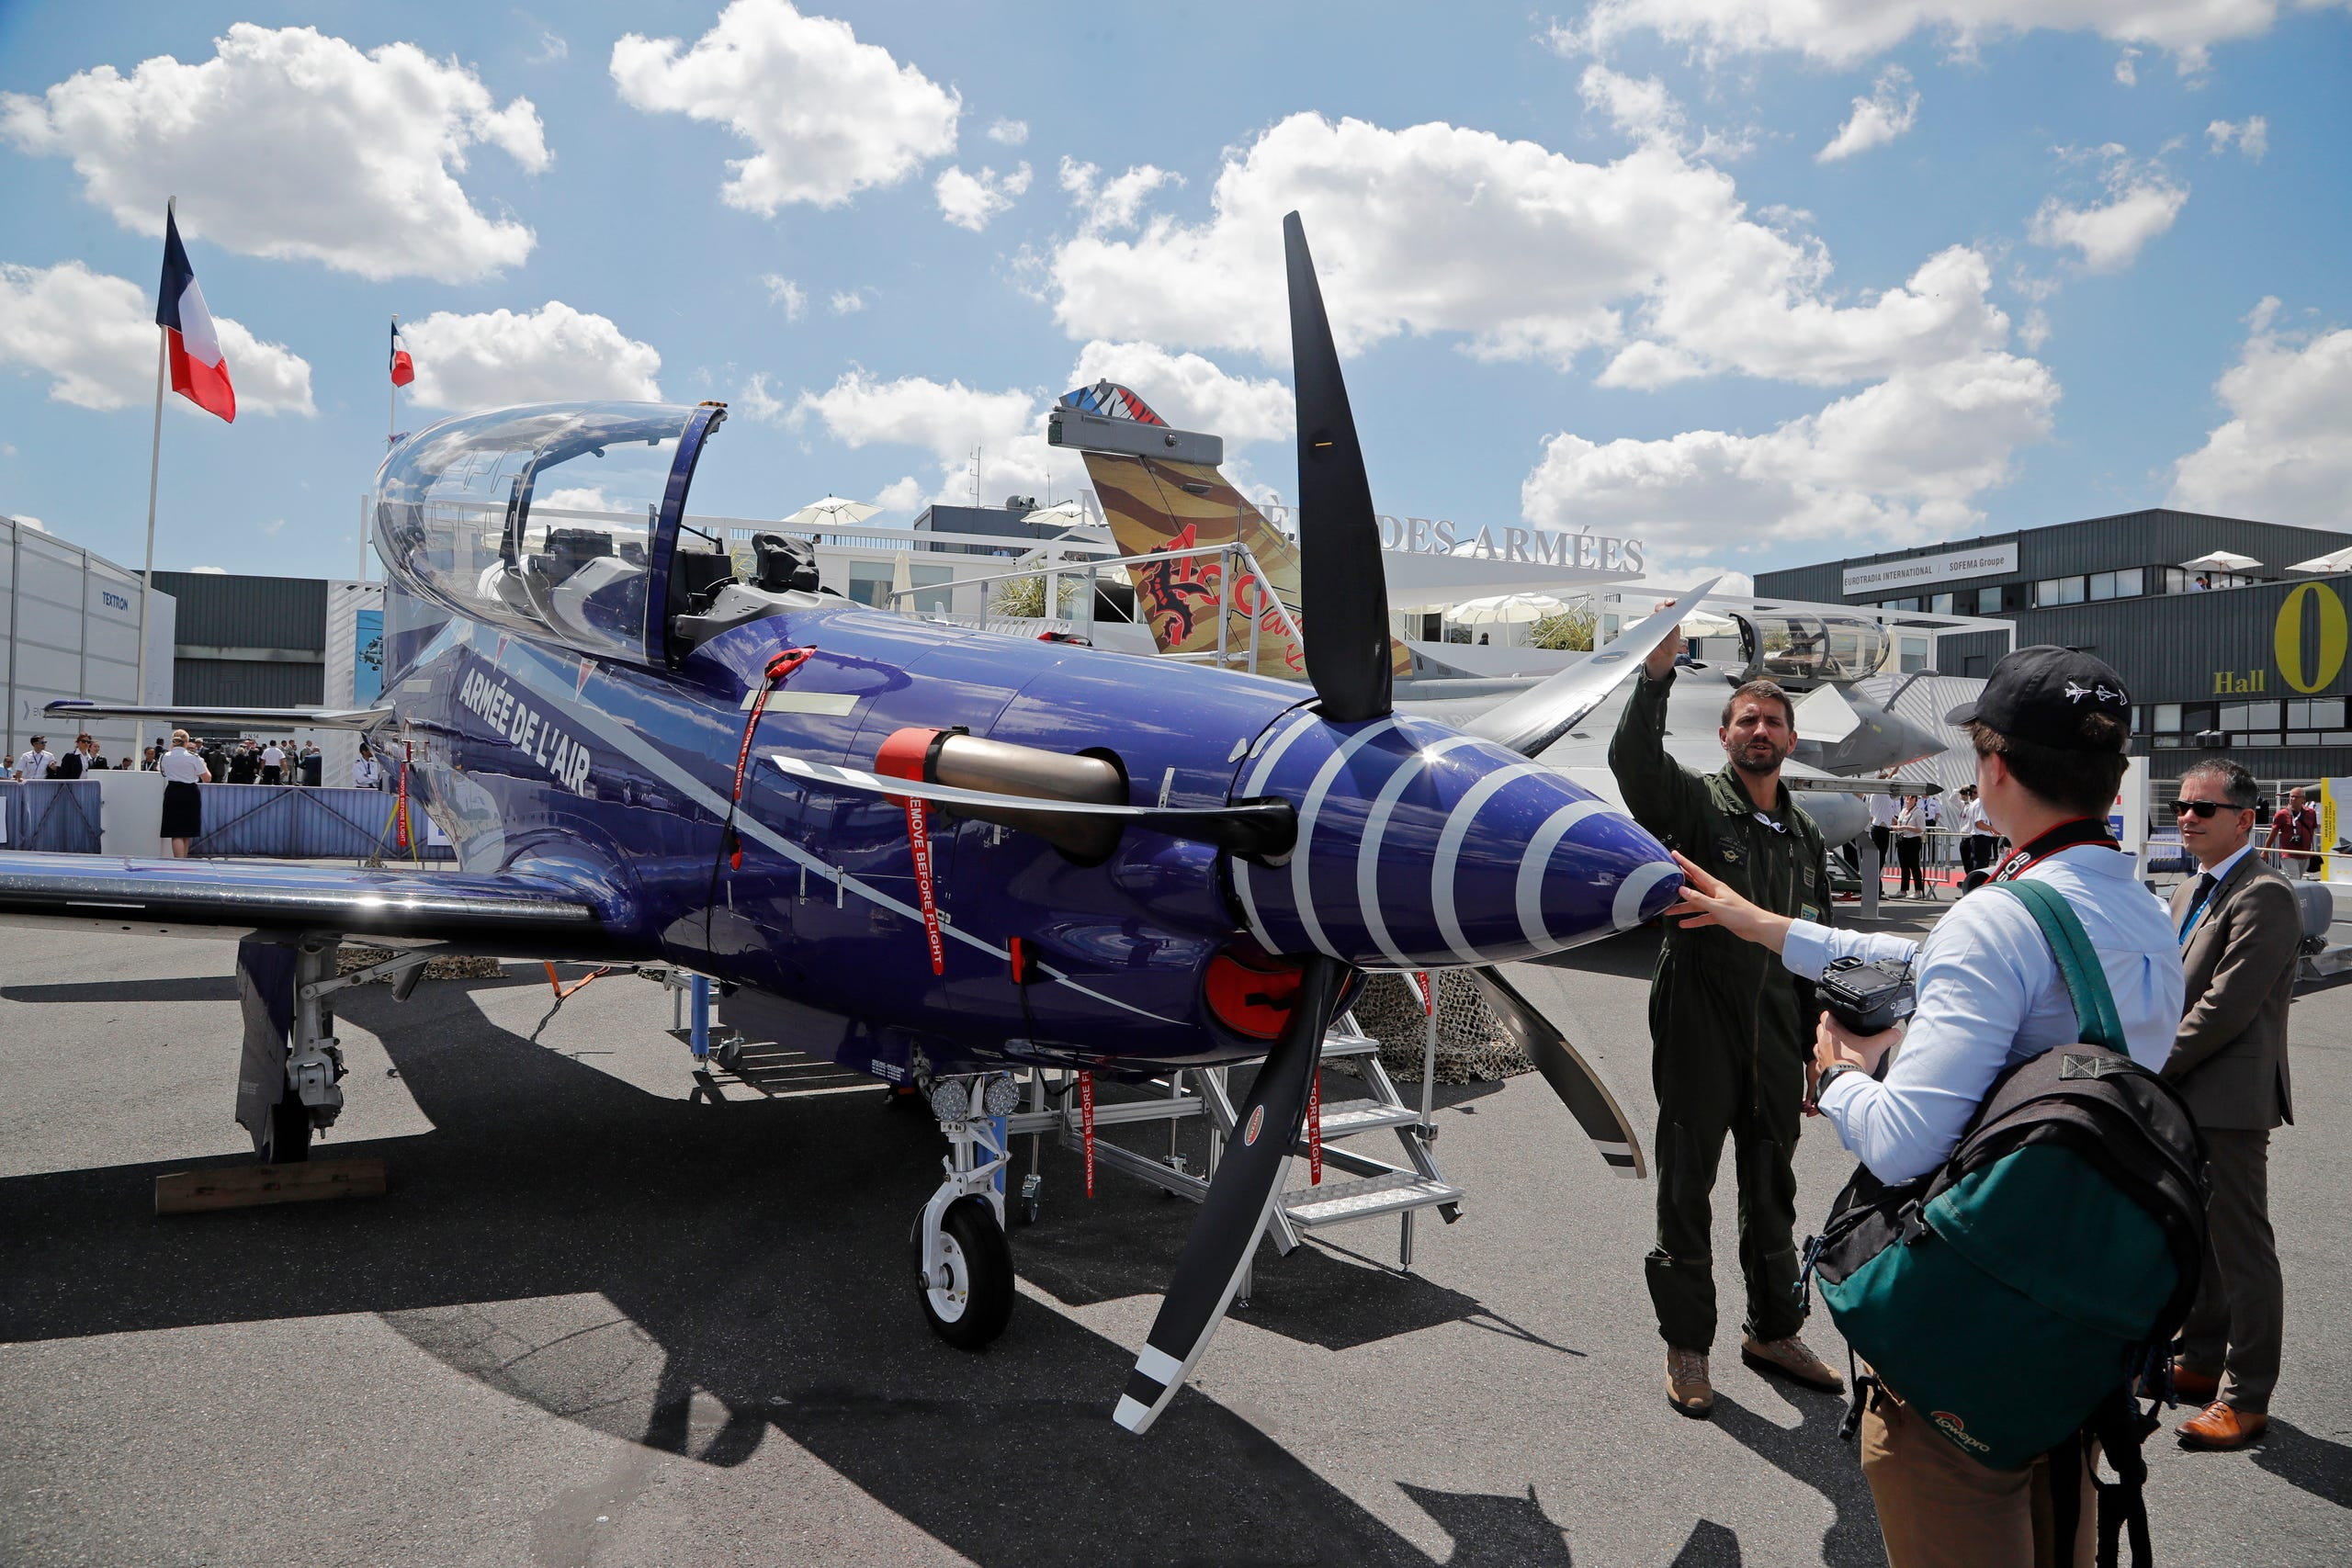 A Pilatus PC-21, a new training aircraft for fighter crews of the French Army,June 17, 2019.